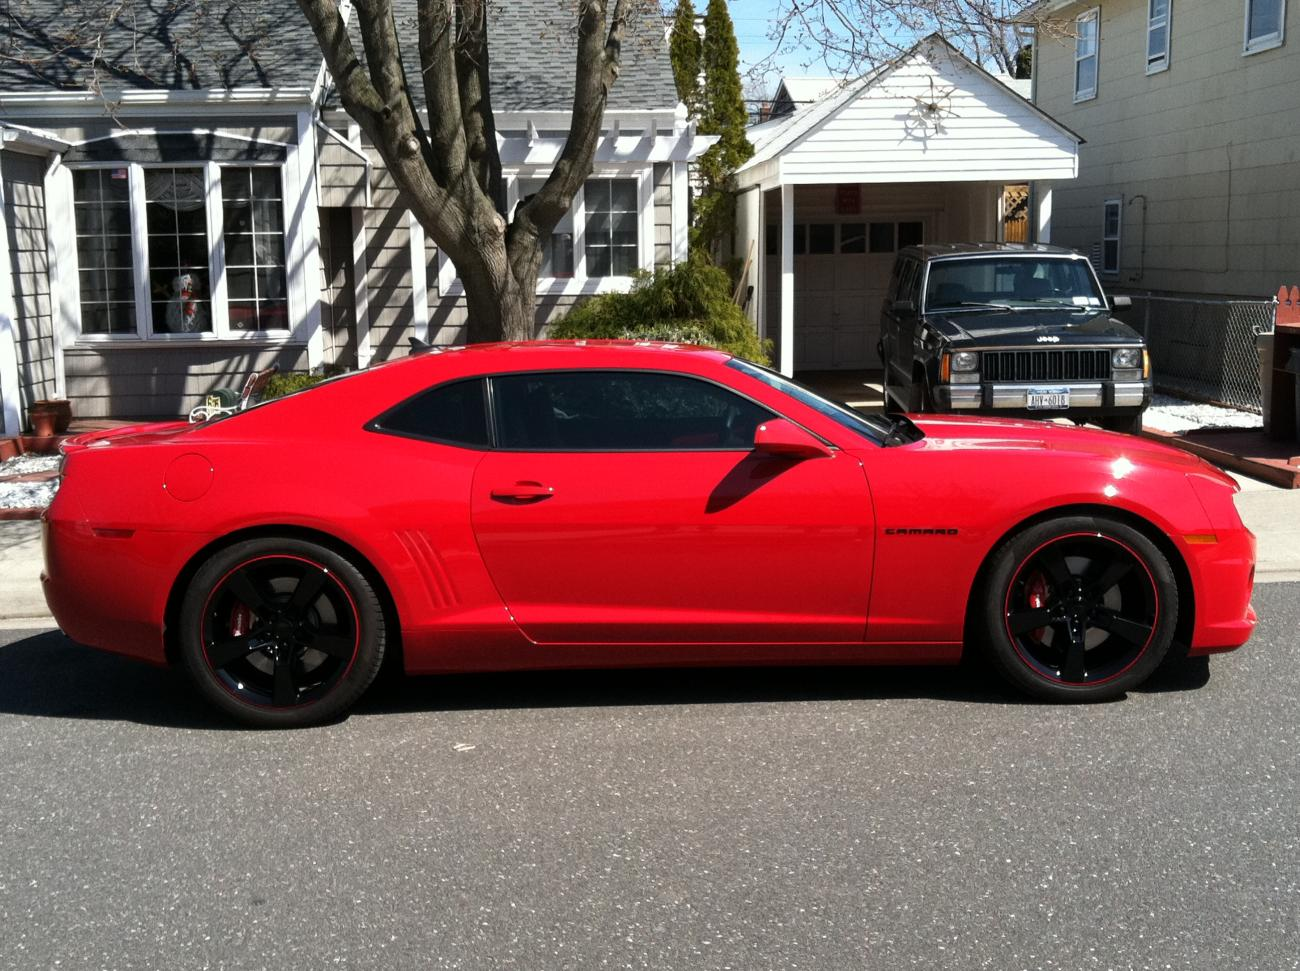 Camaro black and red chevy camaro : PS request. black rims with red pinstripe - Camaro5 Chevy Camaro ...